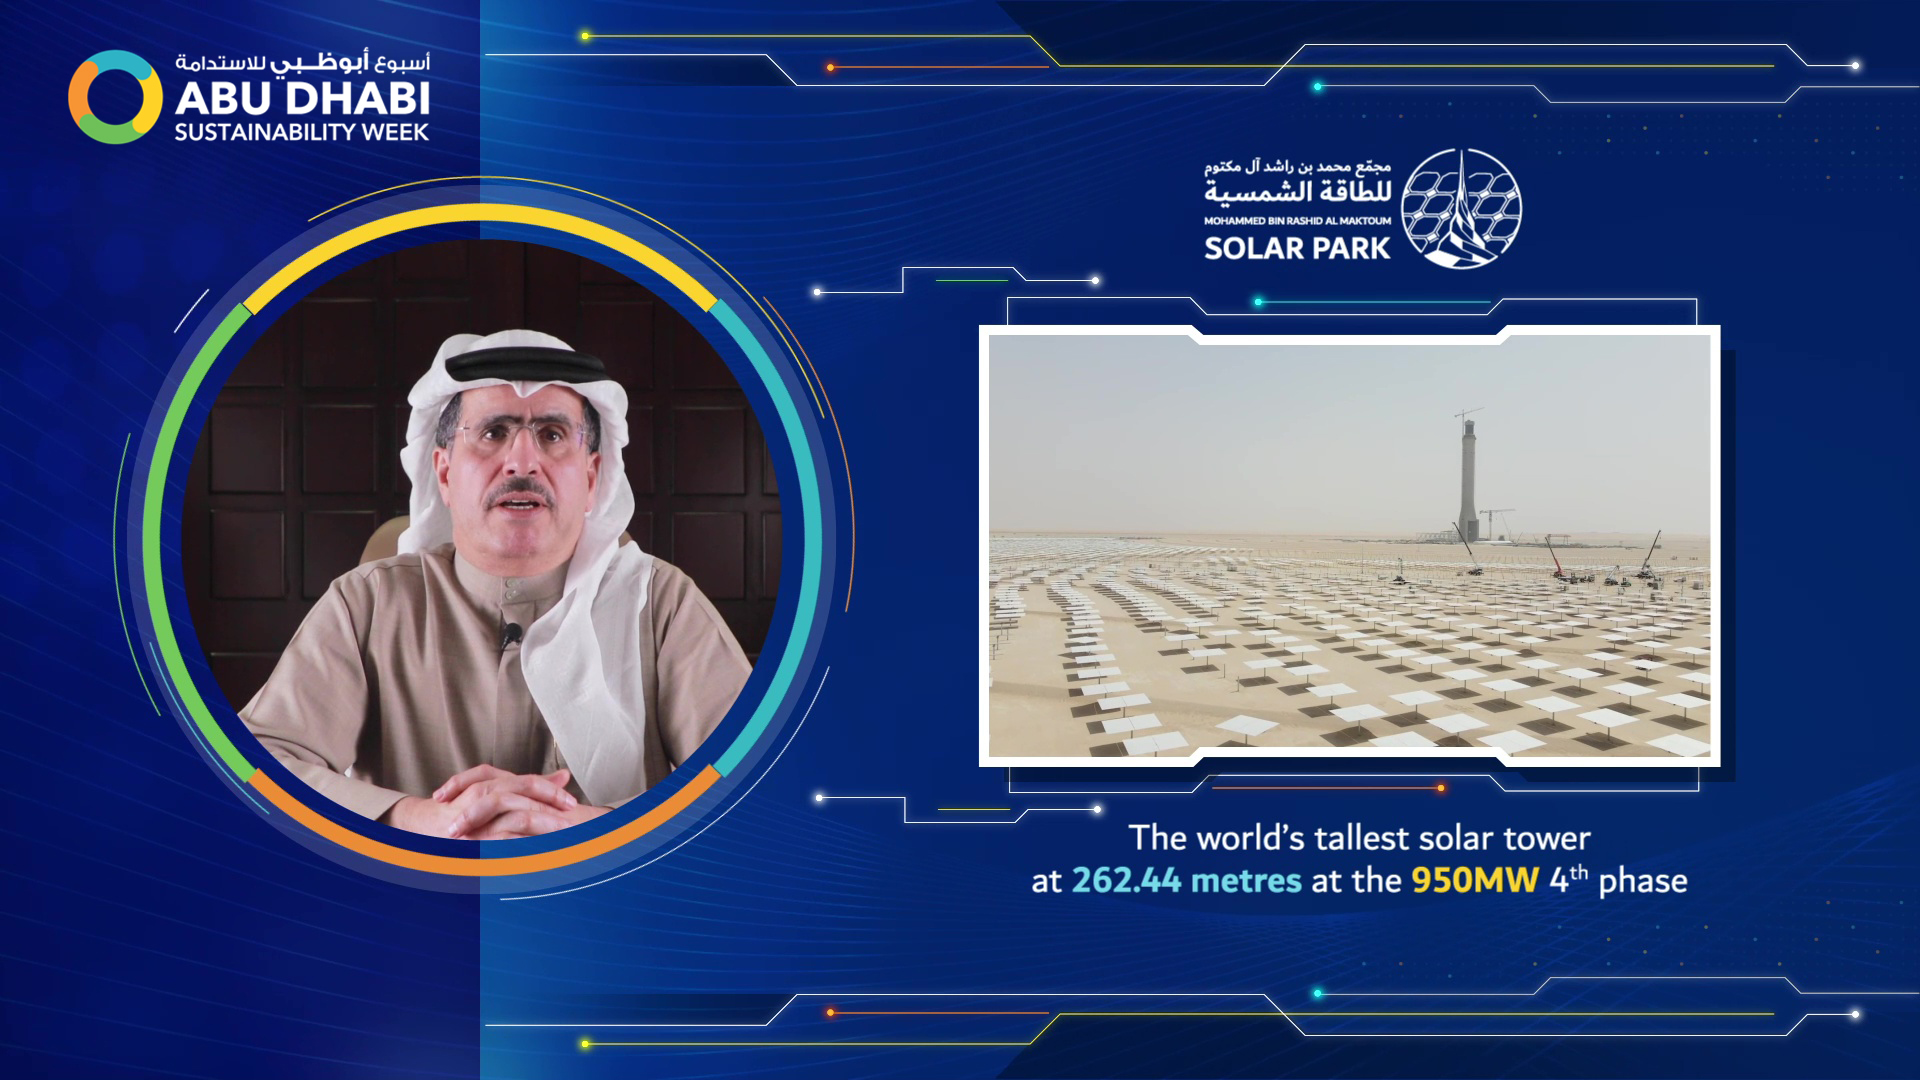 HE Saeed Mohammed Al Tayer announces that Dubai recorded lowest CML per year, electricity network losses, and water network losses in the world